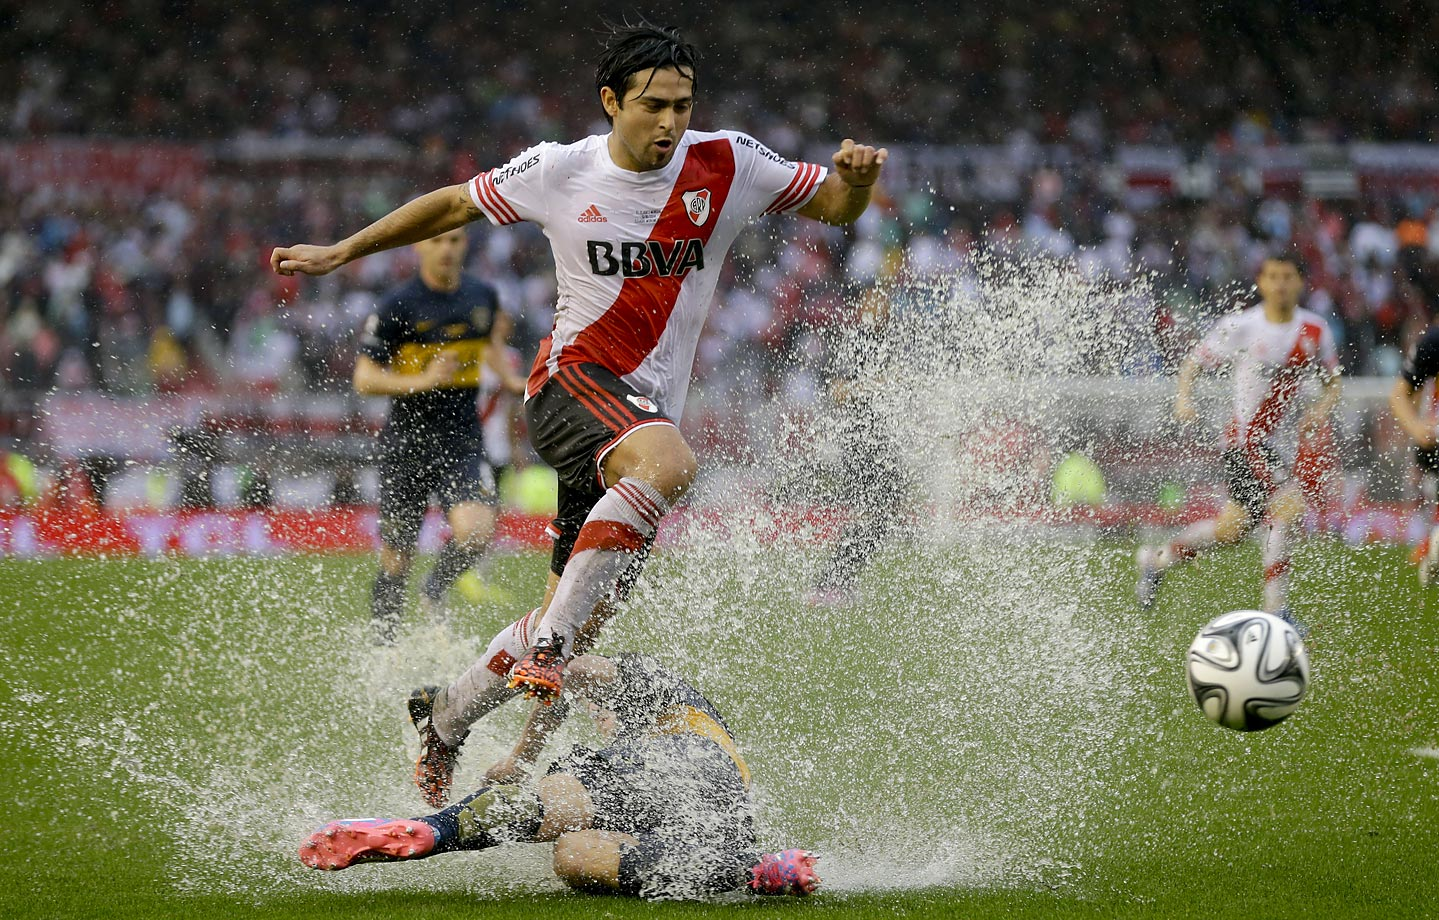 River Plate's Leonardo Pisculichi fights for the ball with Boca Juniors' Nicolas Colazo during a rainy Argentine league soccer match in Buenos Aires.